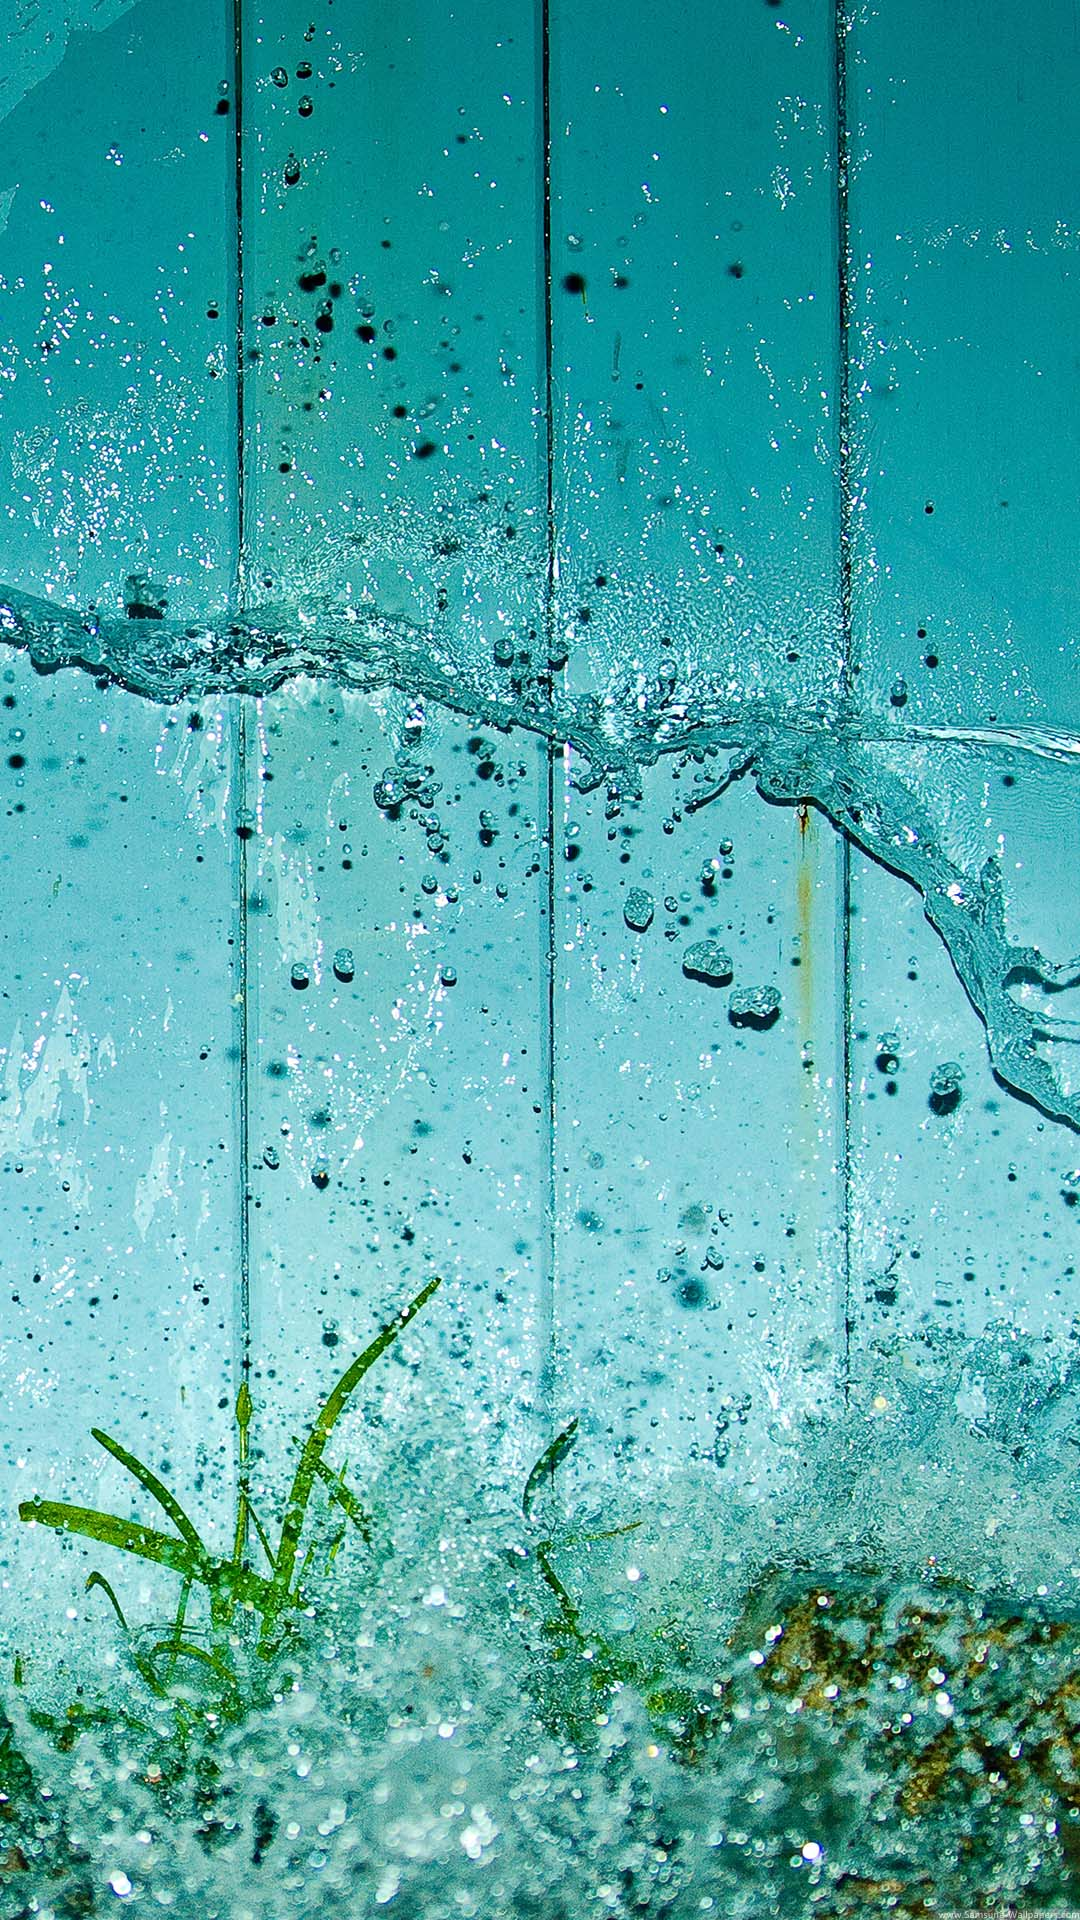 Water Abstract Lock Screen Samsung Galaxy Note 3 Wallpaper Water Wallpapers For Android 1080x1920 Wallpaper Teahub Io